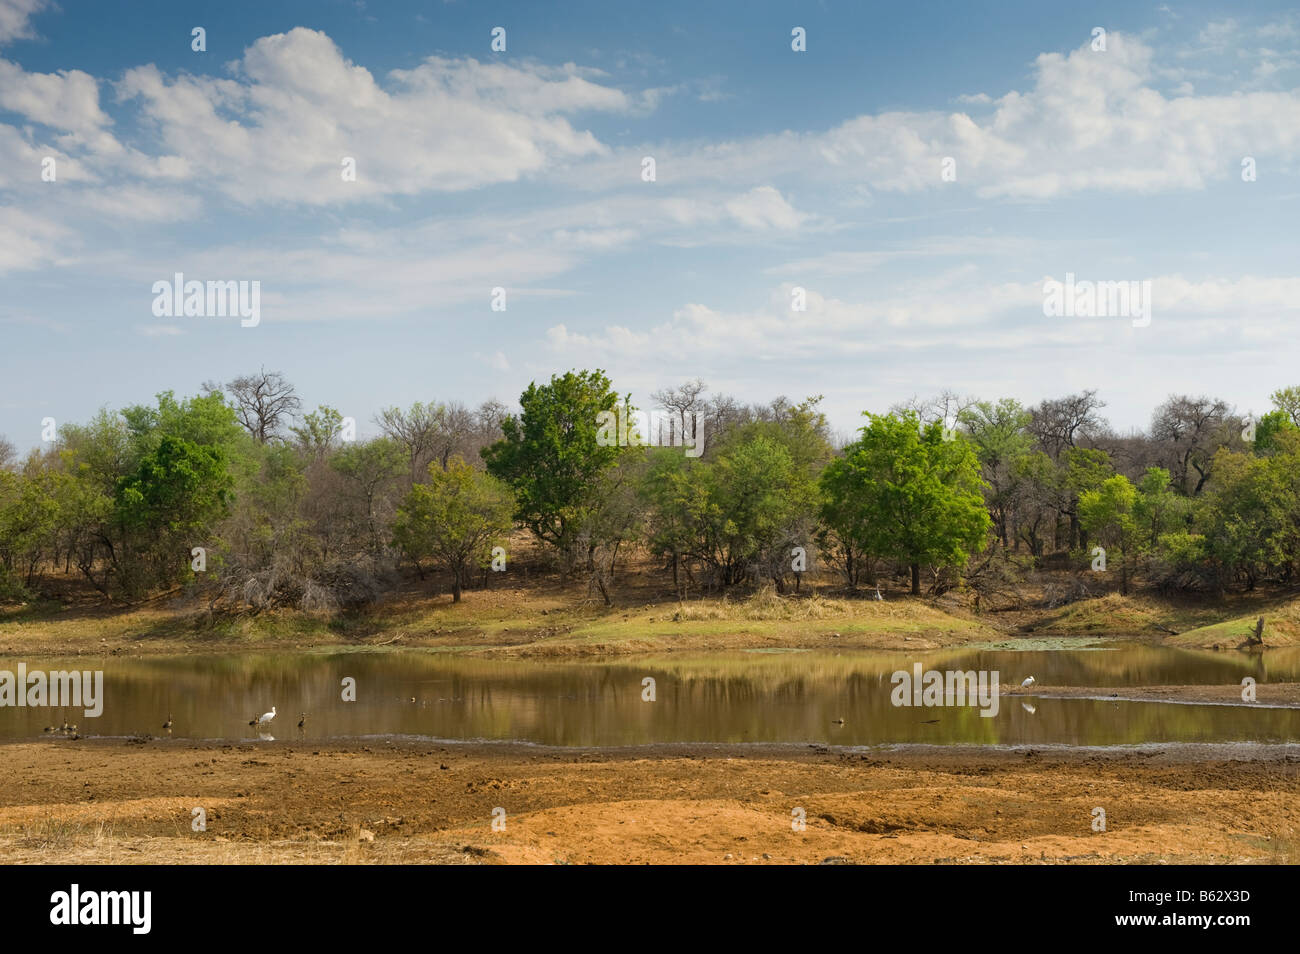 water hole water hole river riverbed bed wide view landscape south africa desert red dust dirt road drive way safari - Stock Image